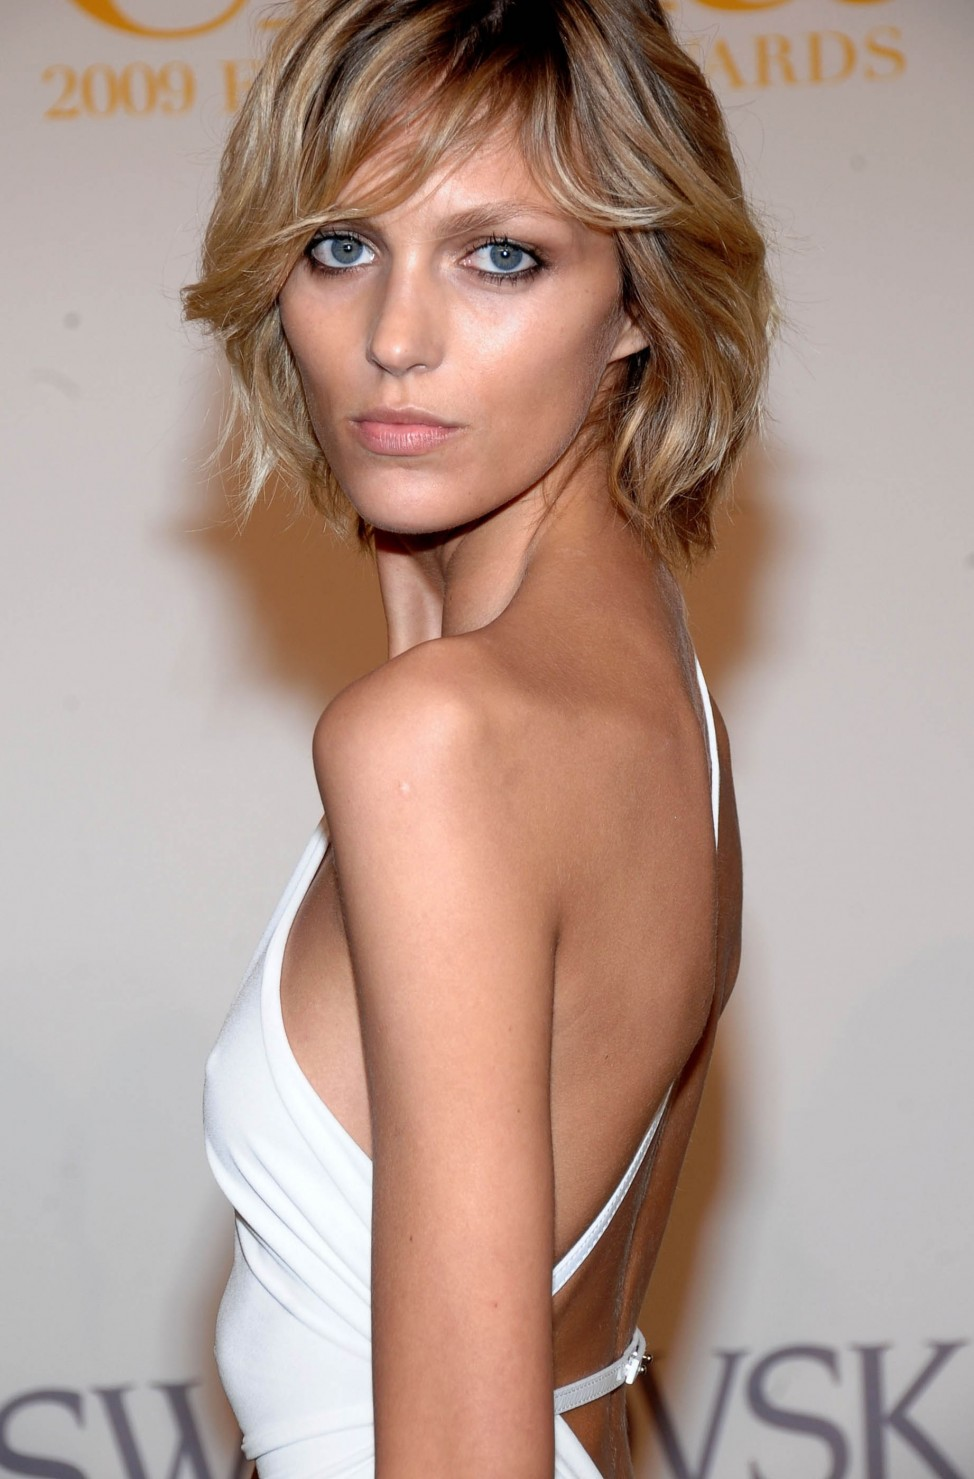 lifestyle: Fashion Icon: Anja Rubik